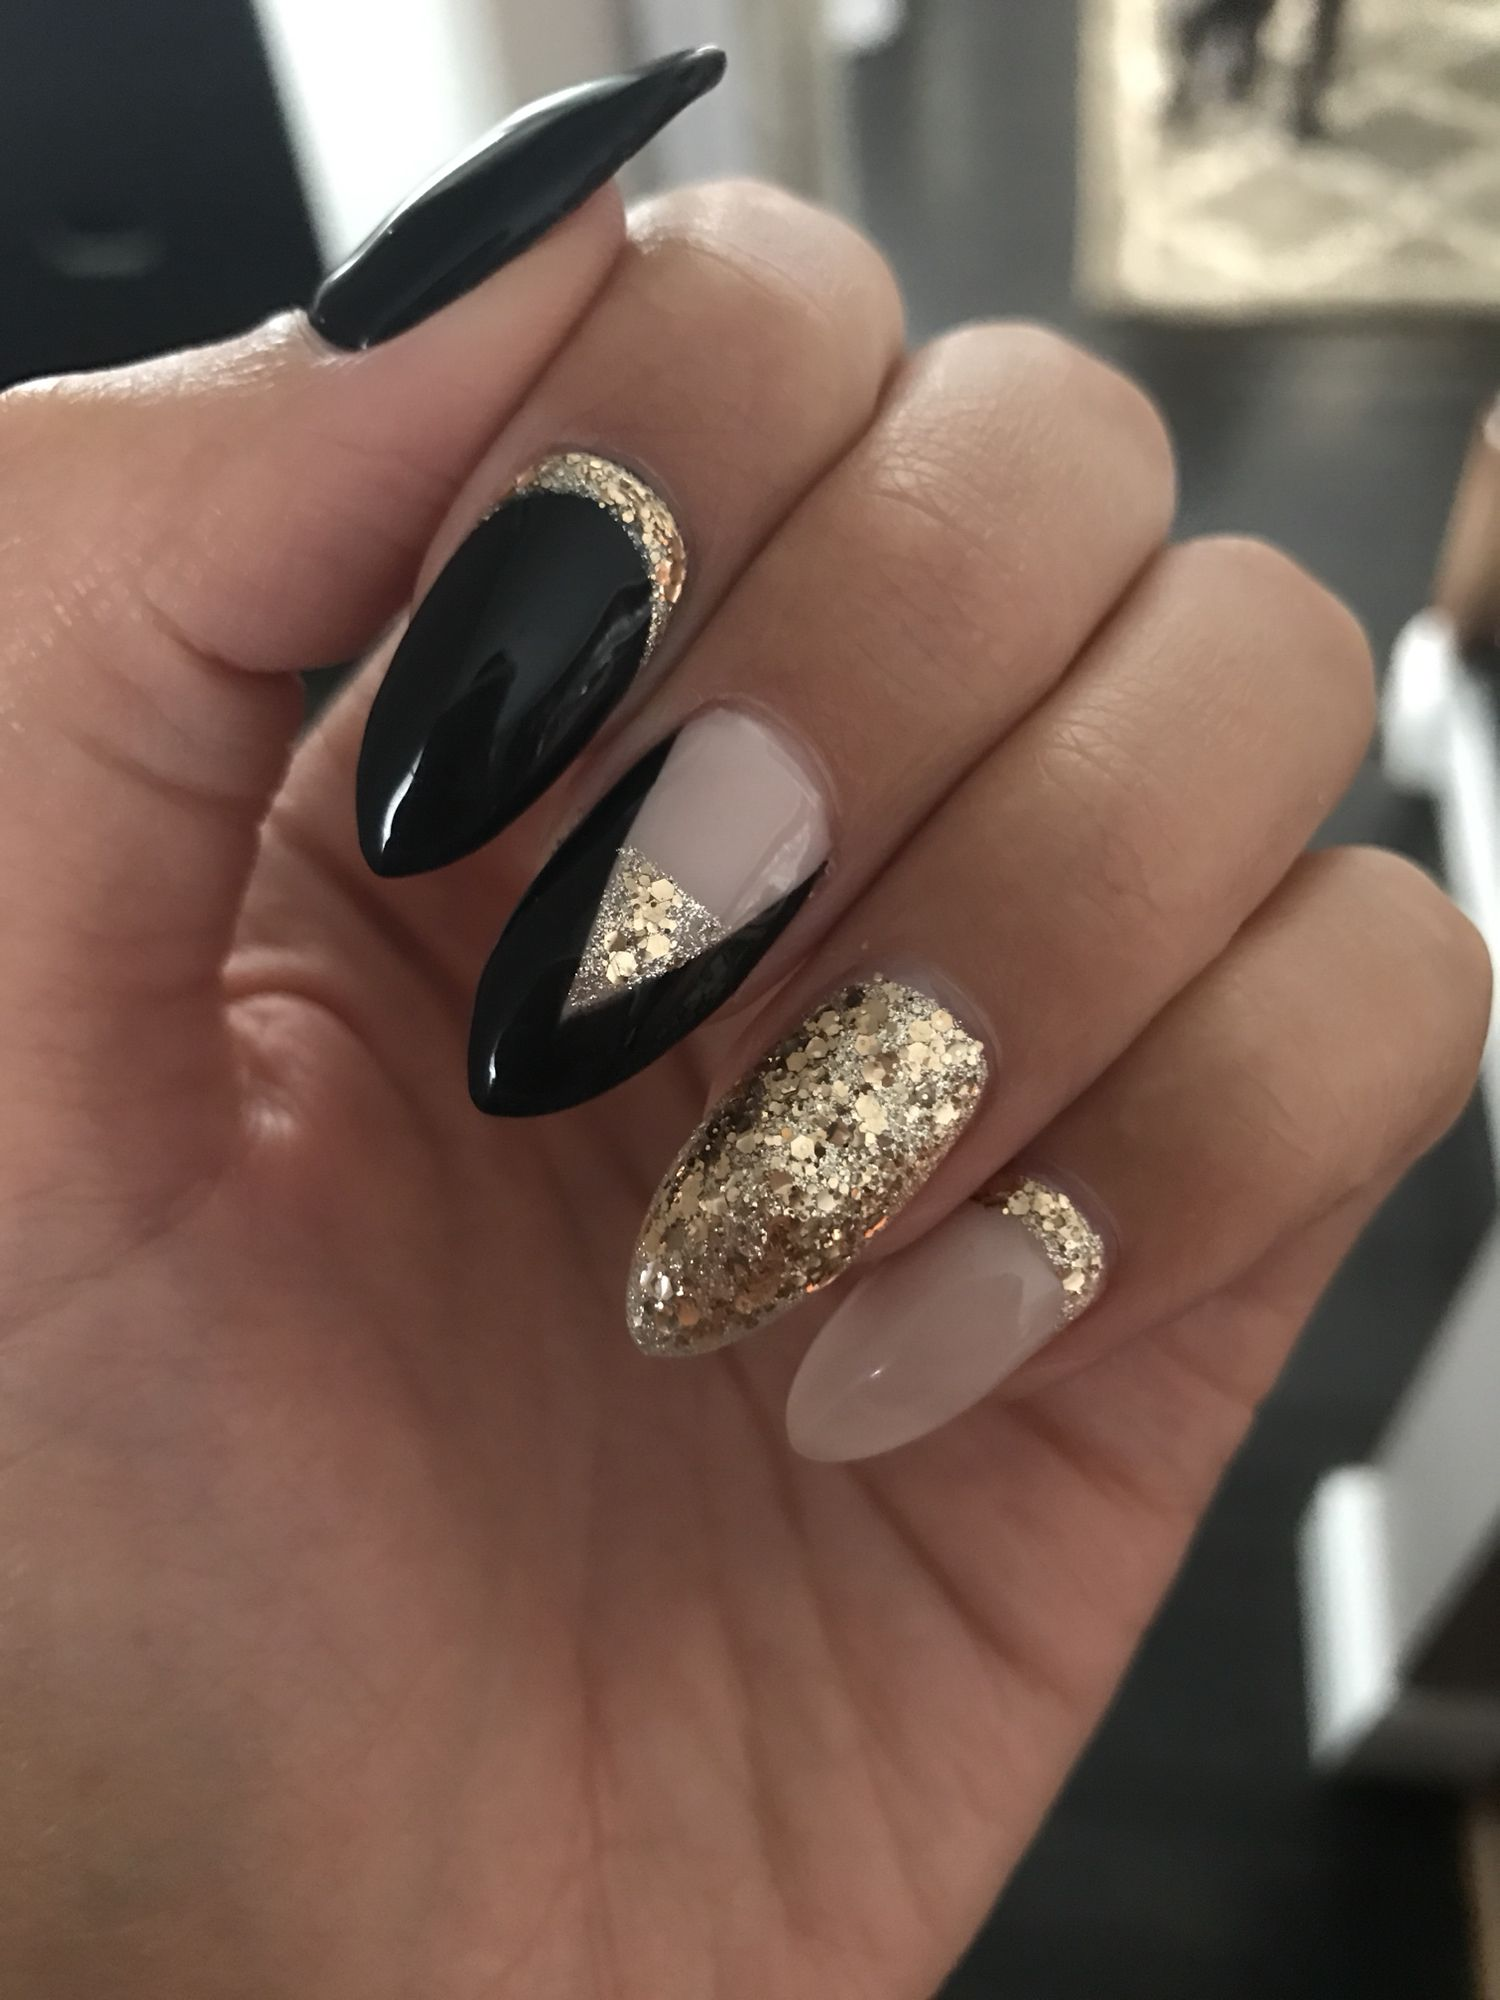 New years coffin nails - Expression Nails